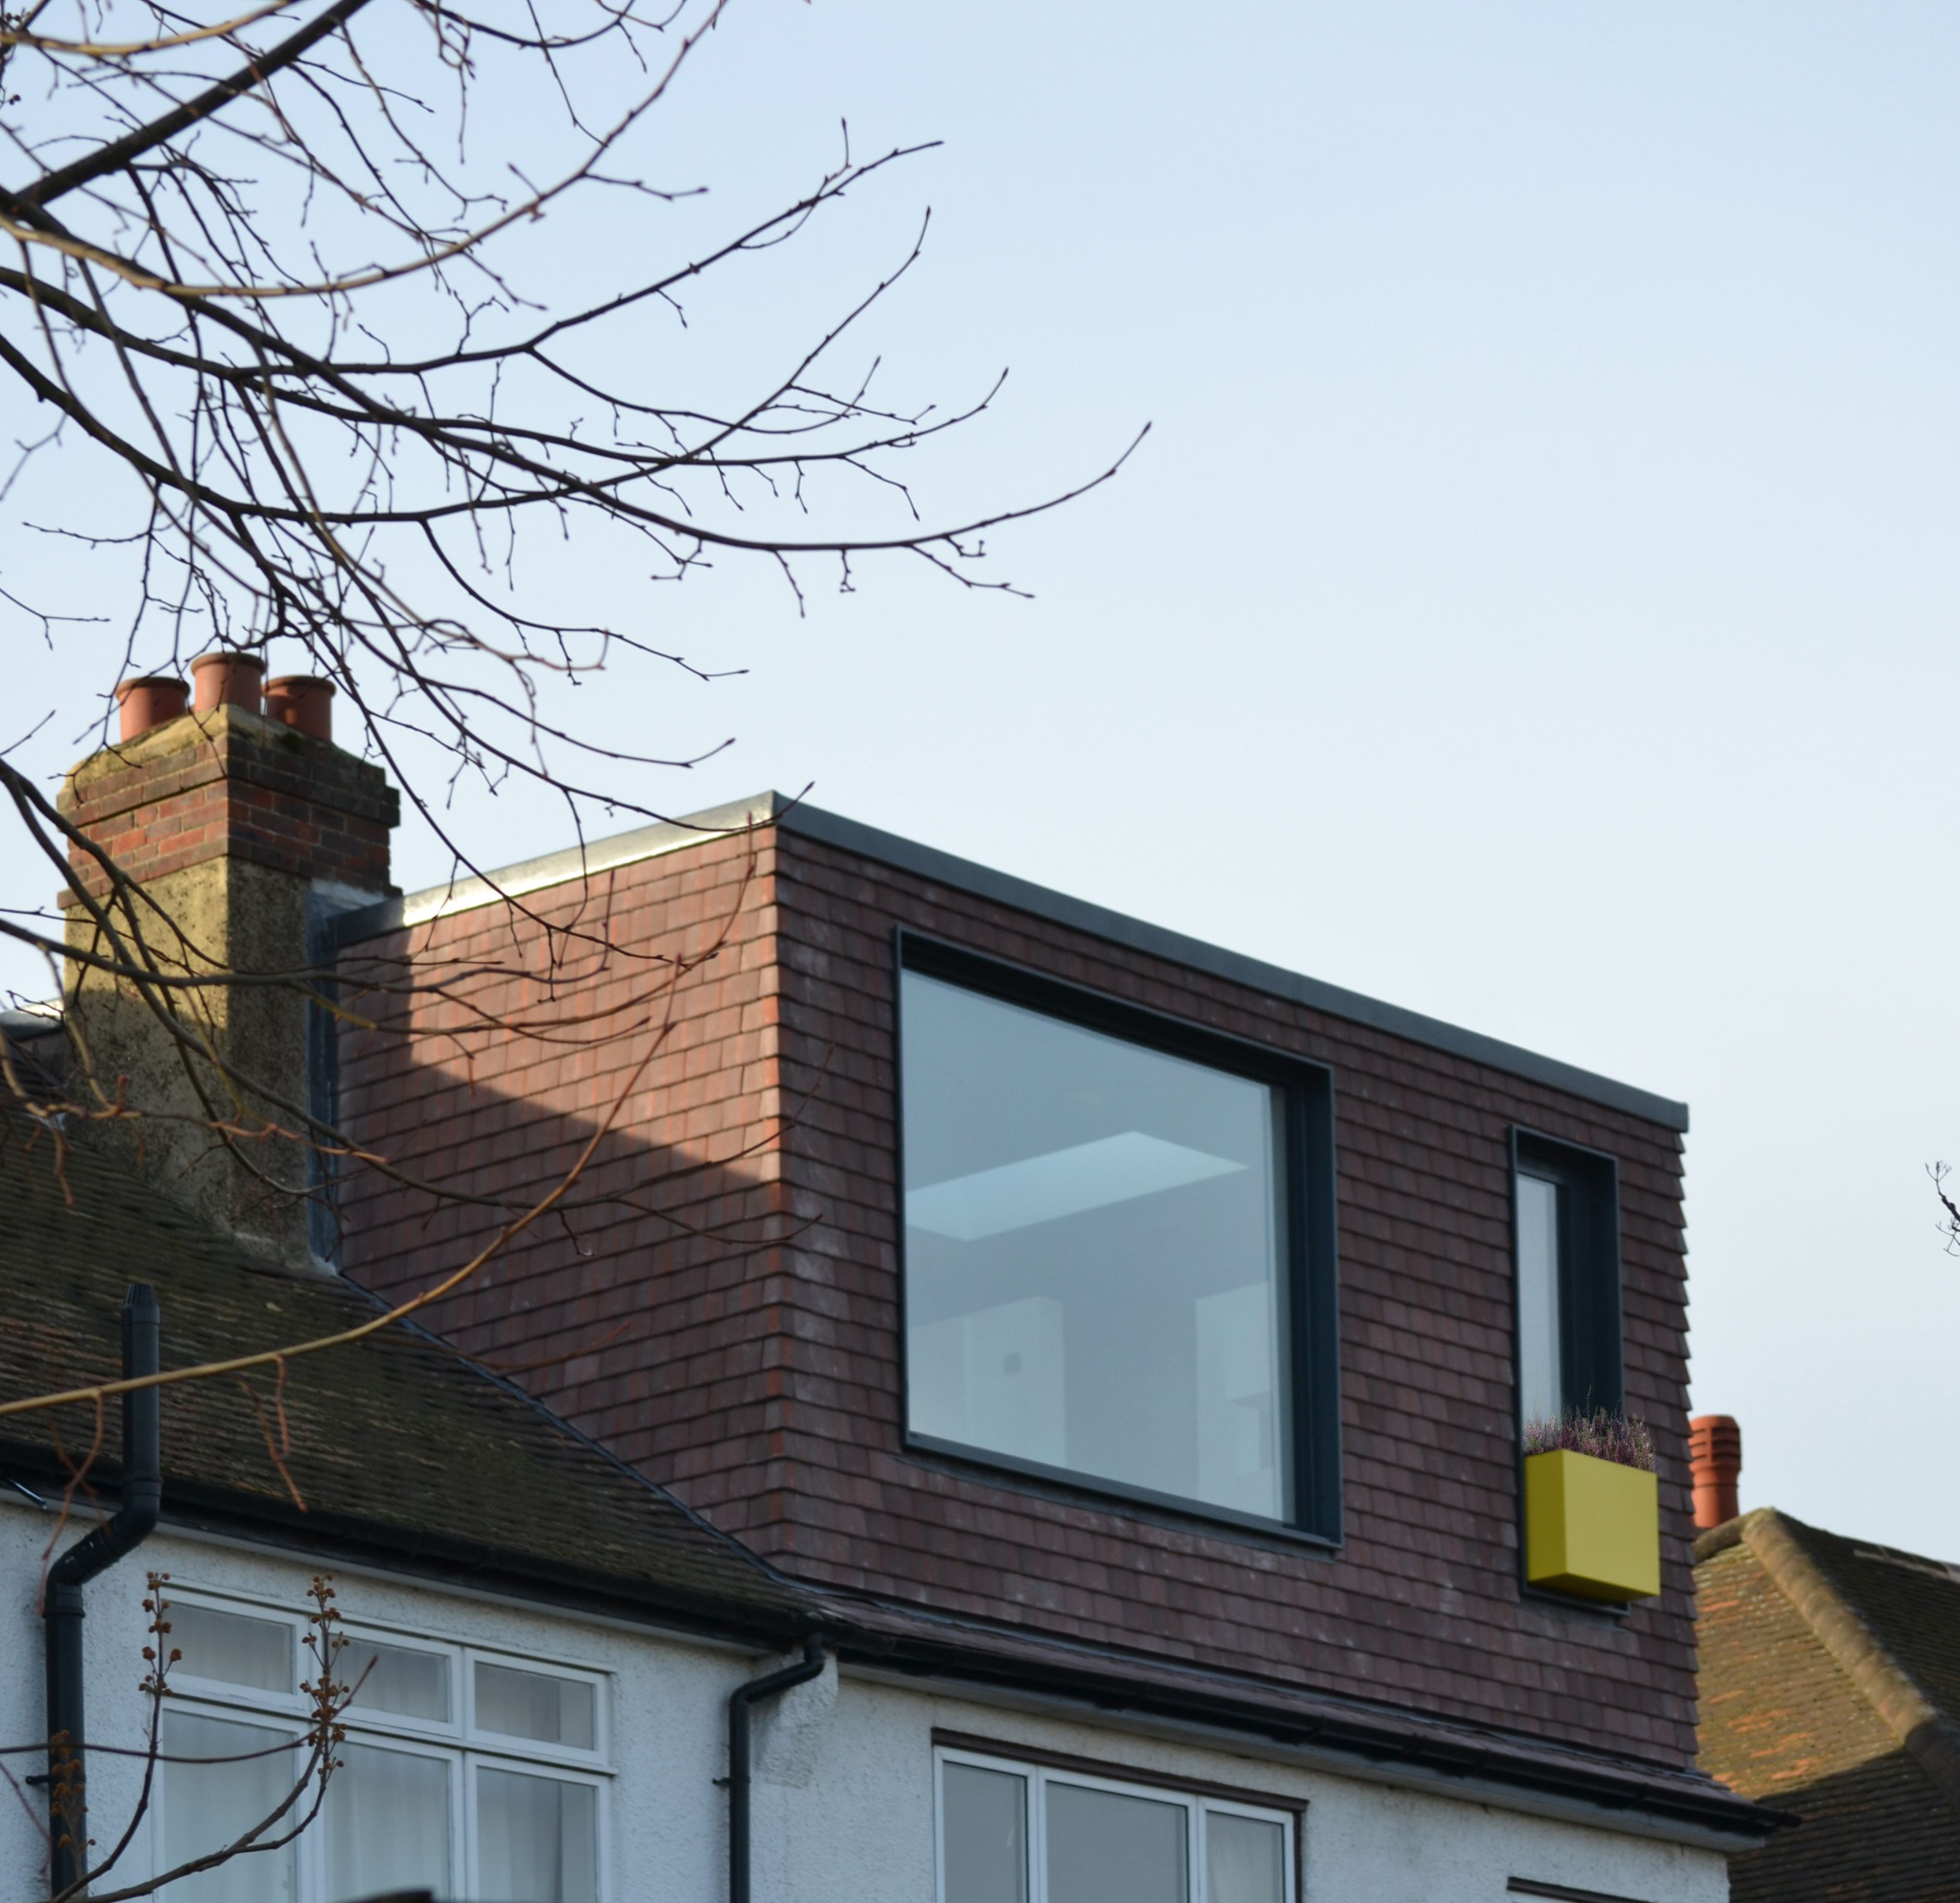 House Conversion And Loft Extension In West Norwood South London By Selencky Parsons Architects Loft Conversion Loft Dormer Dormer Loft Conversion